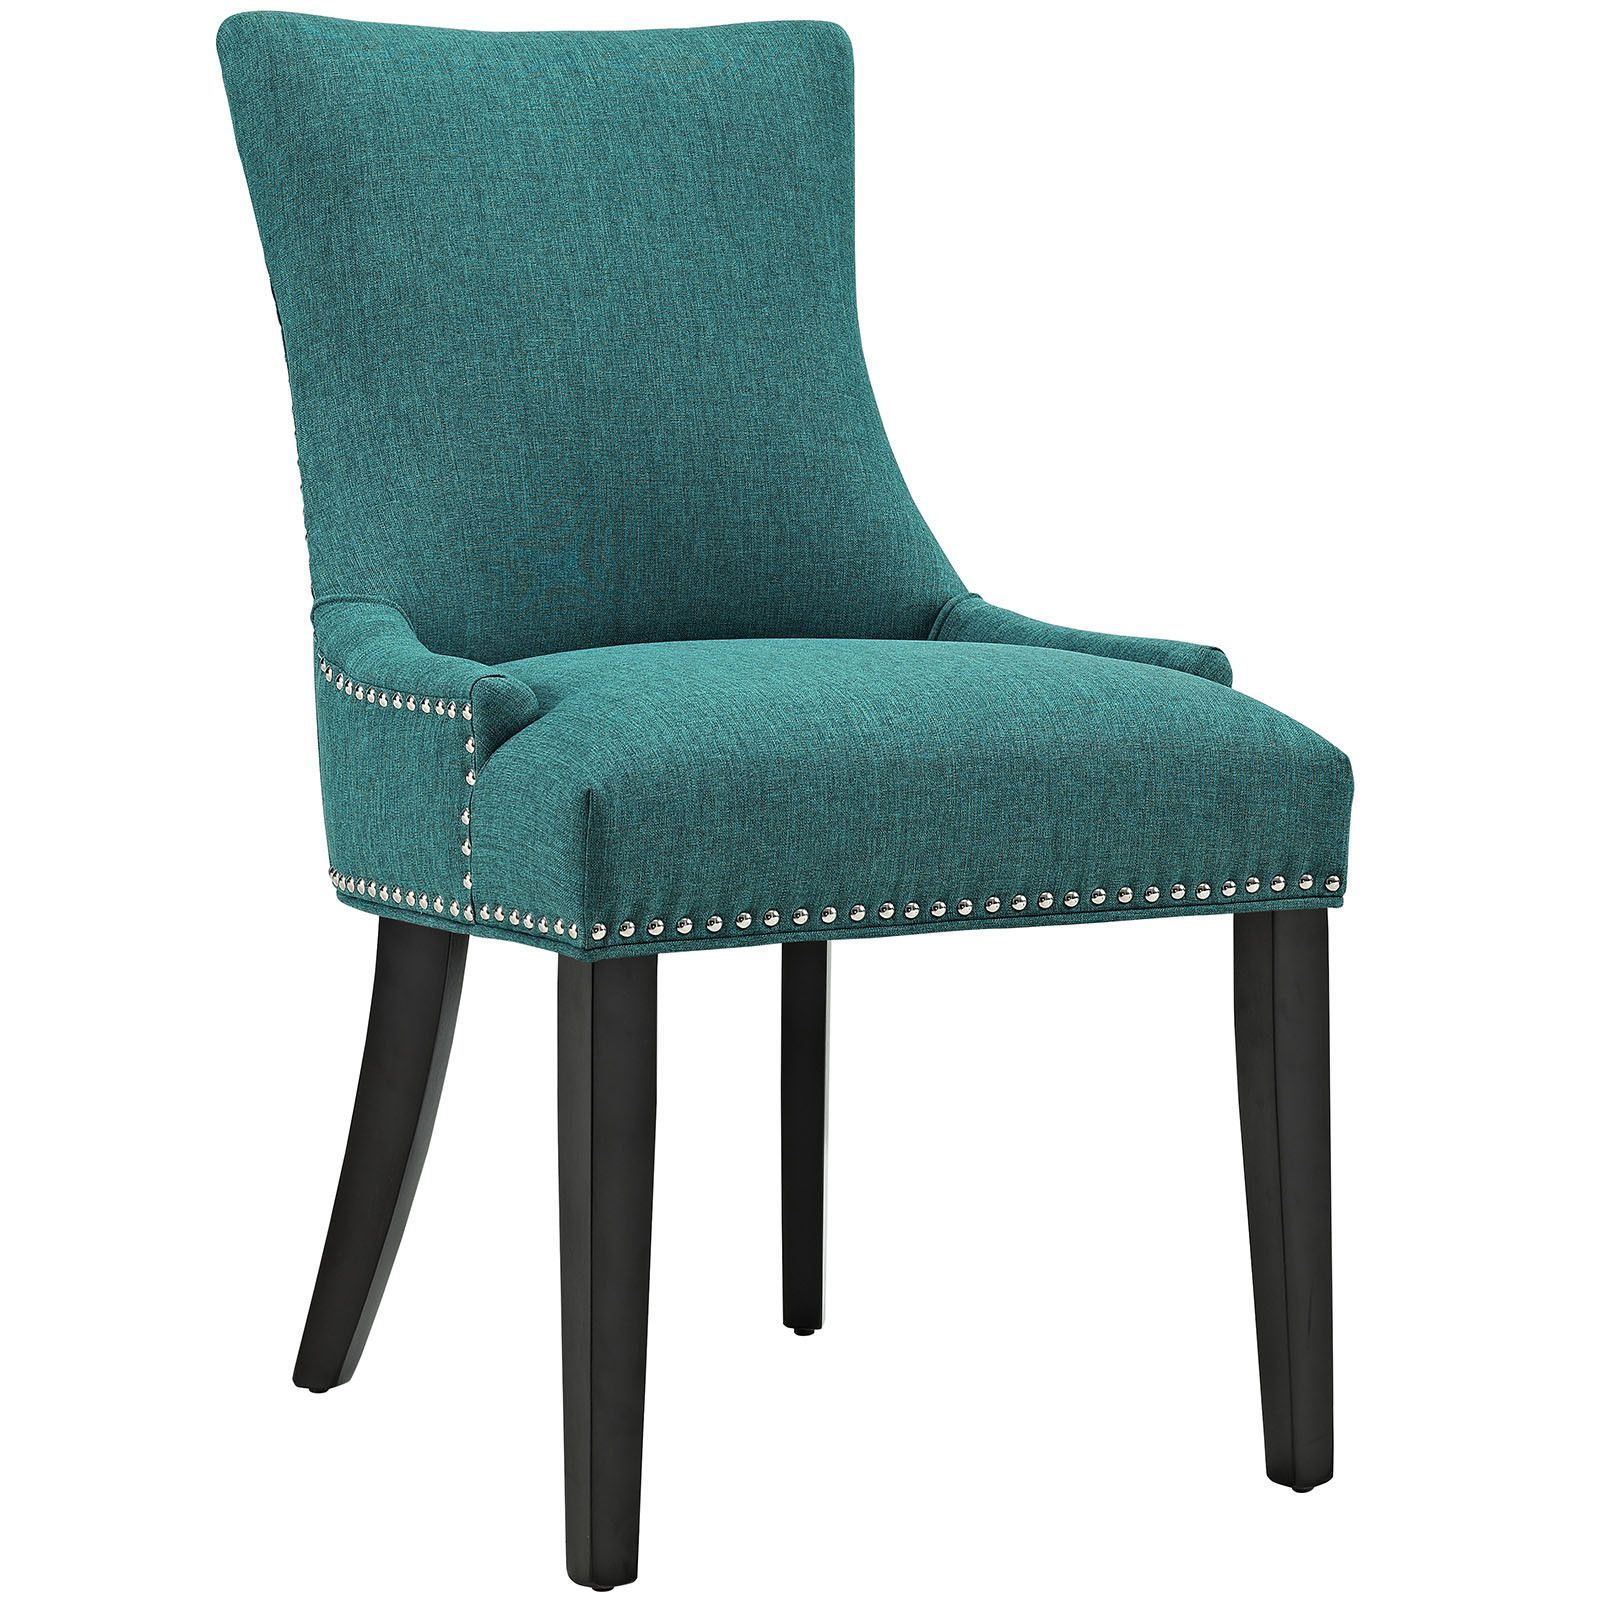 Buy Marquis Fabric Dining Chair at ModelDeco for only $165 00